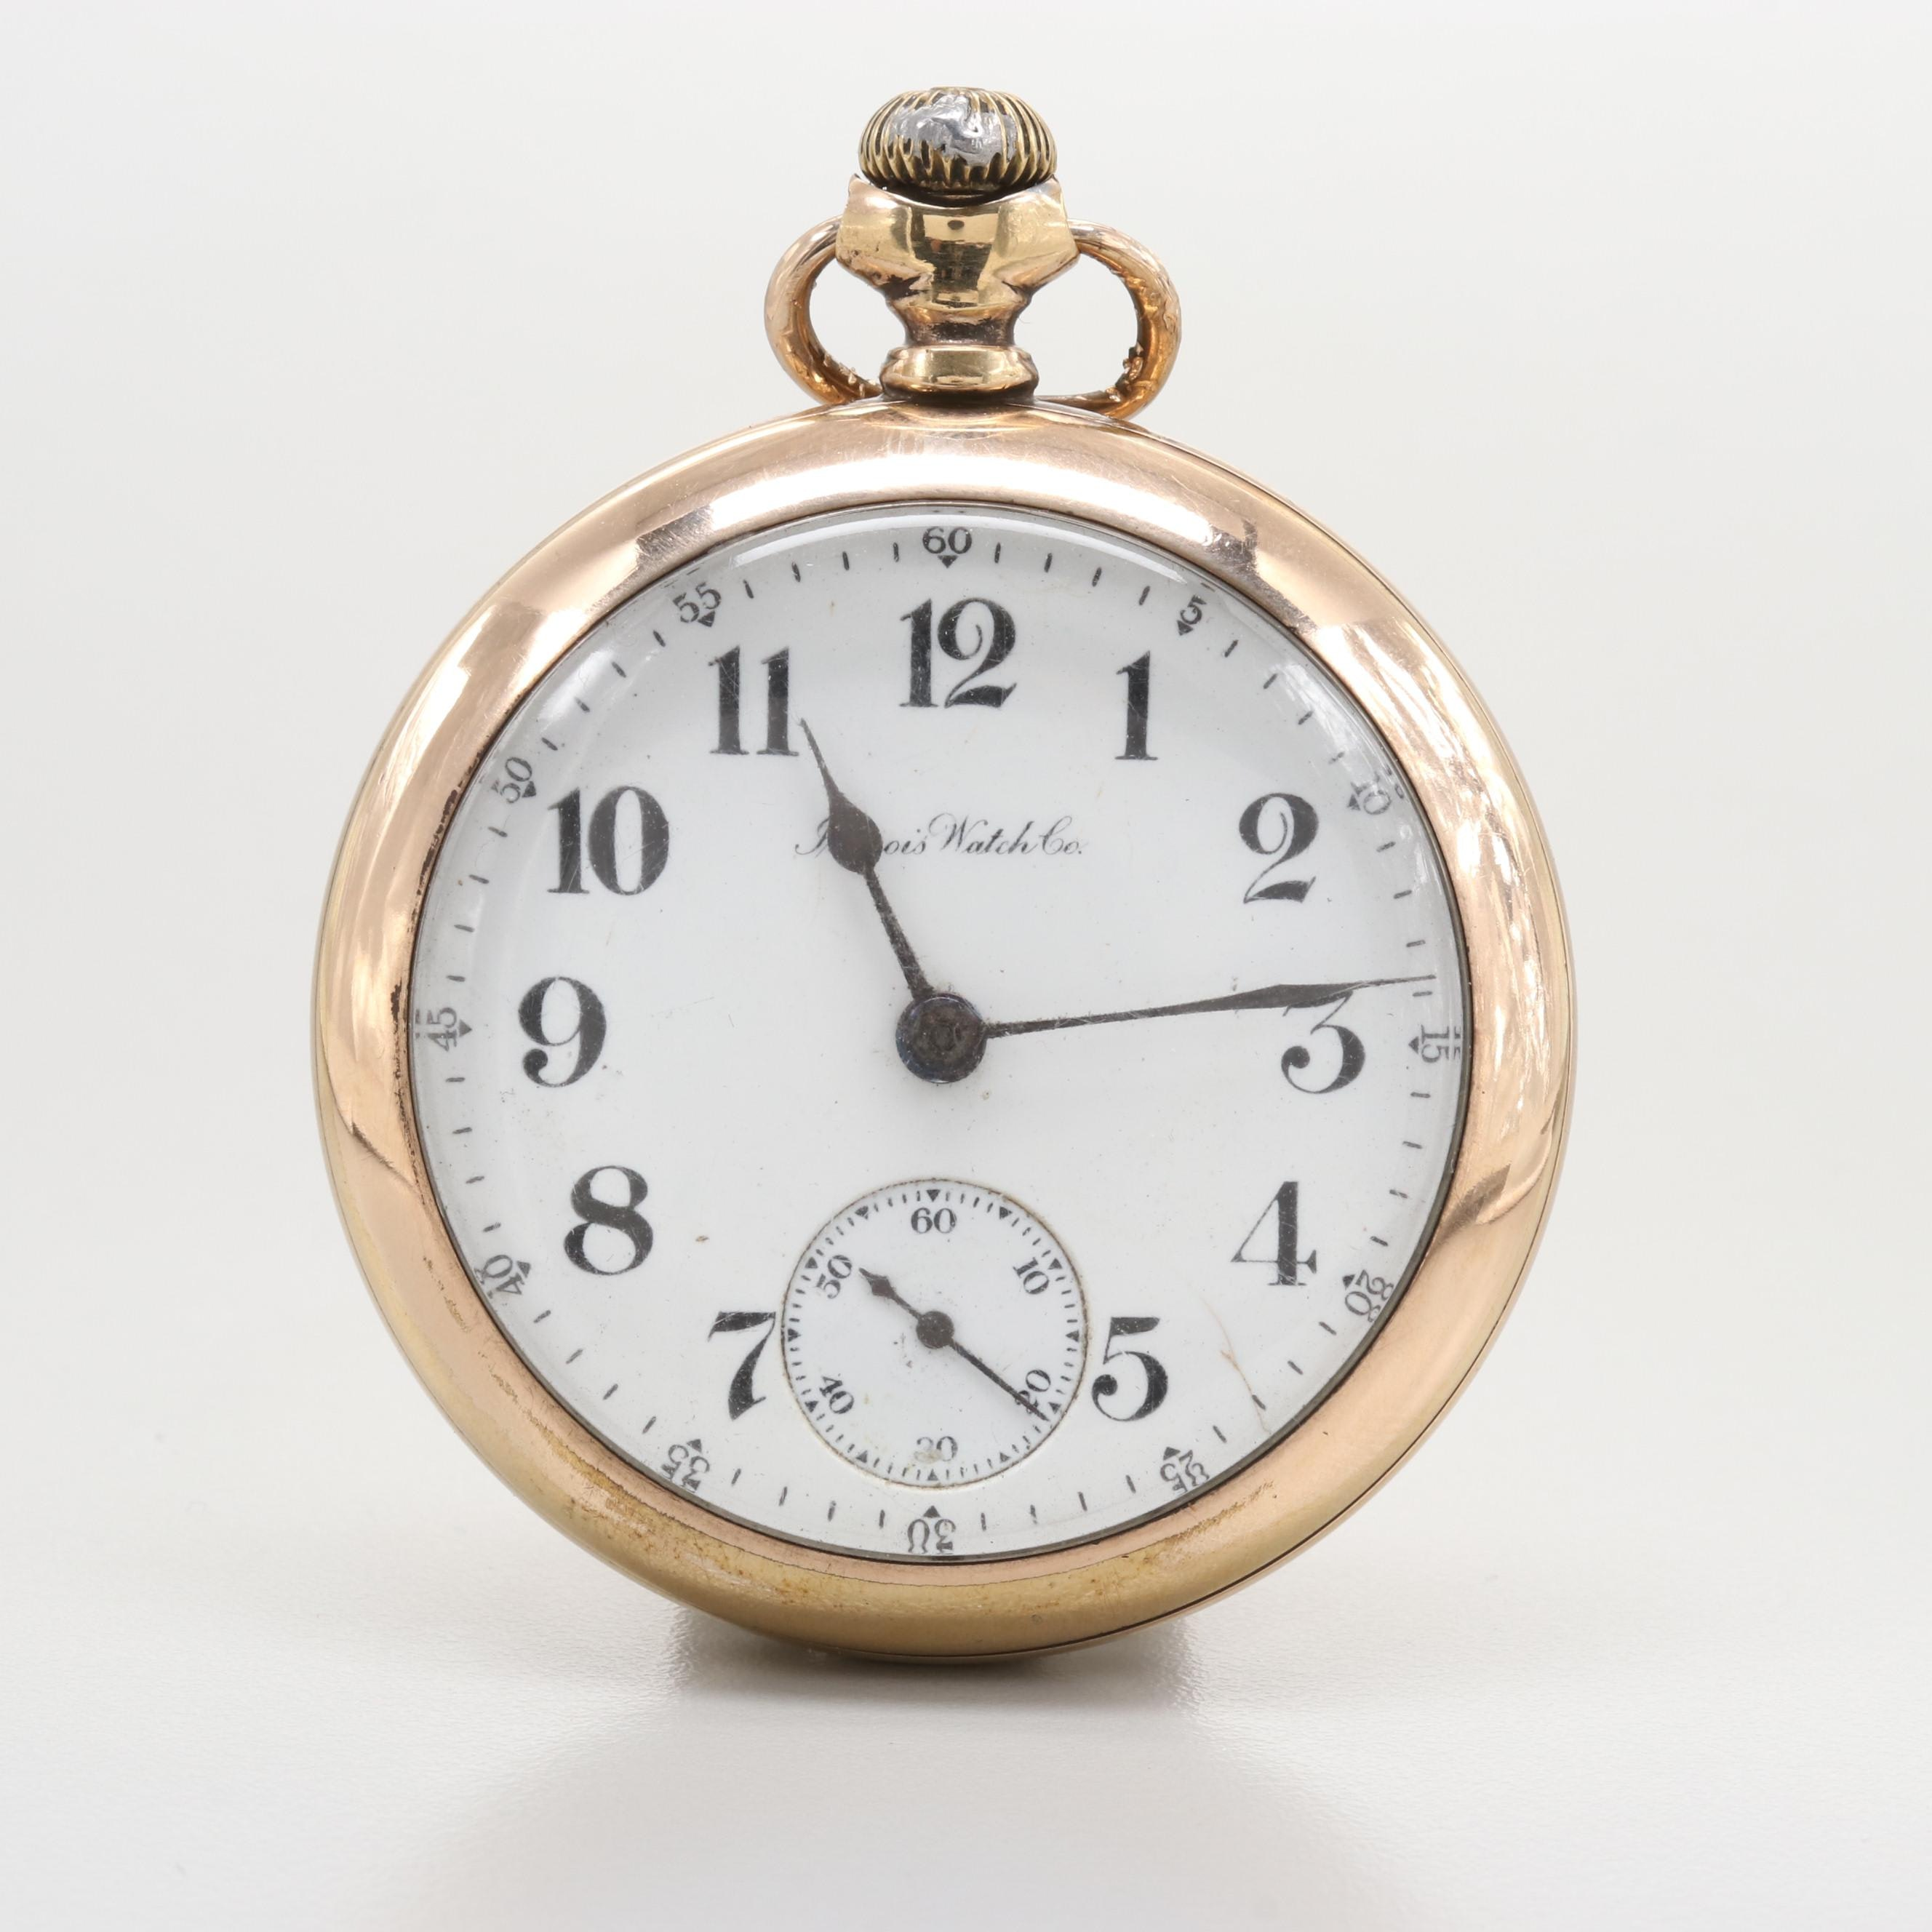 Illinois Gold Filled Lever Set Pocket Watch, 1915